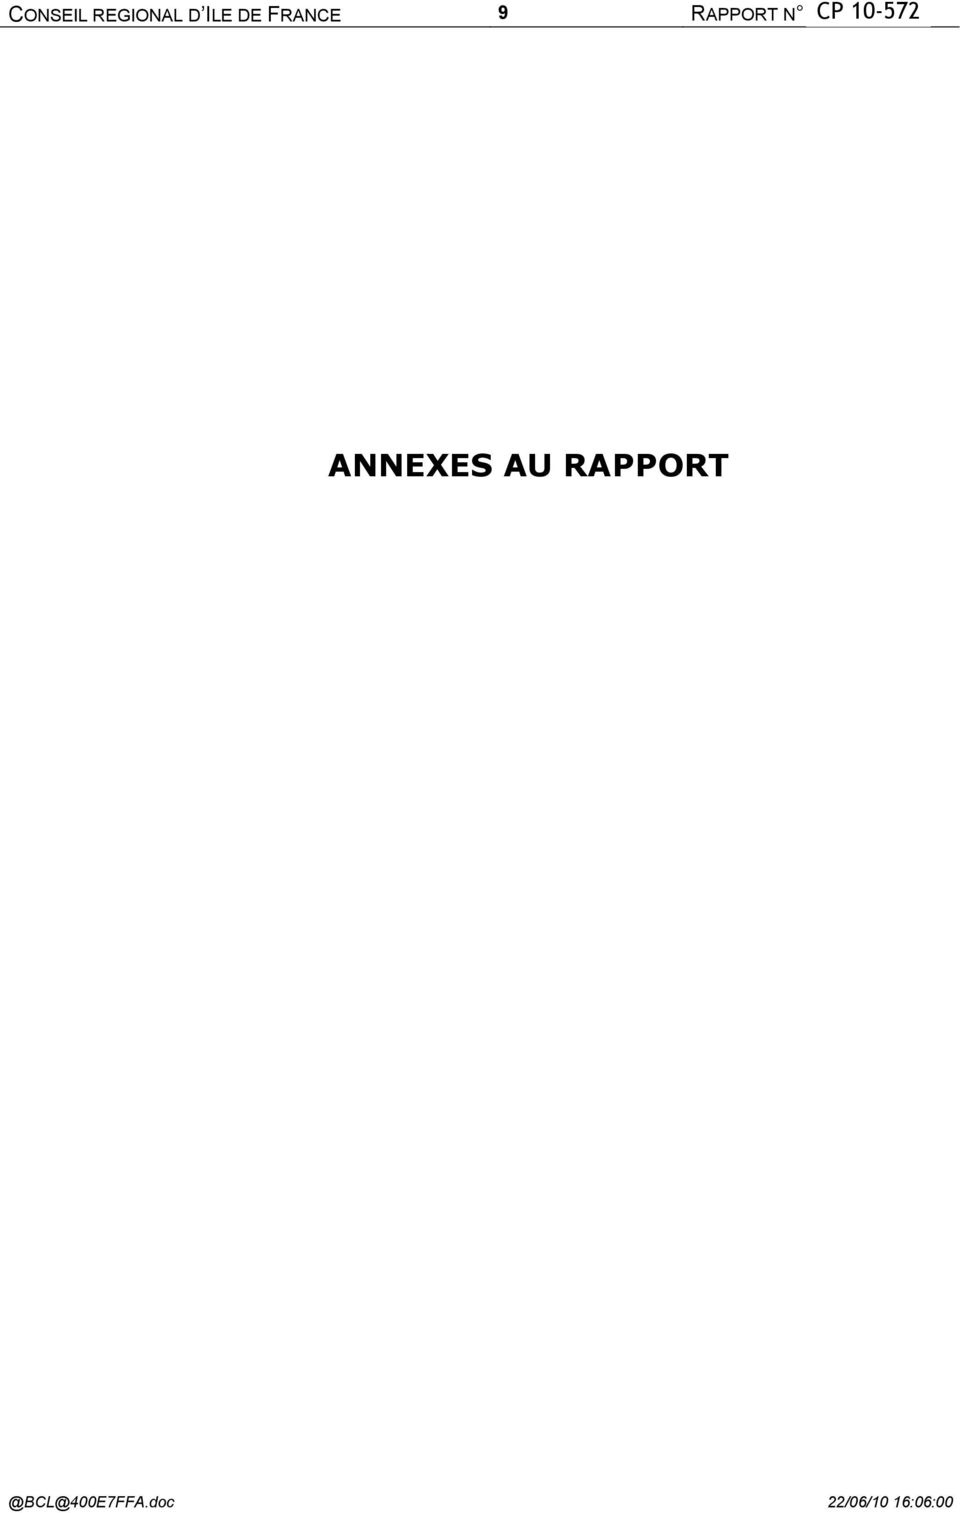 RAPPORT N <%numcx%>